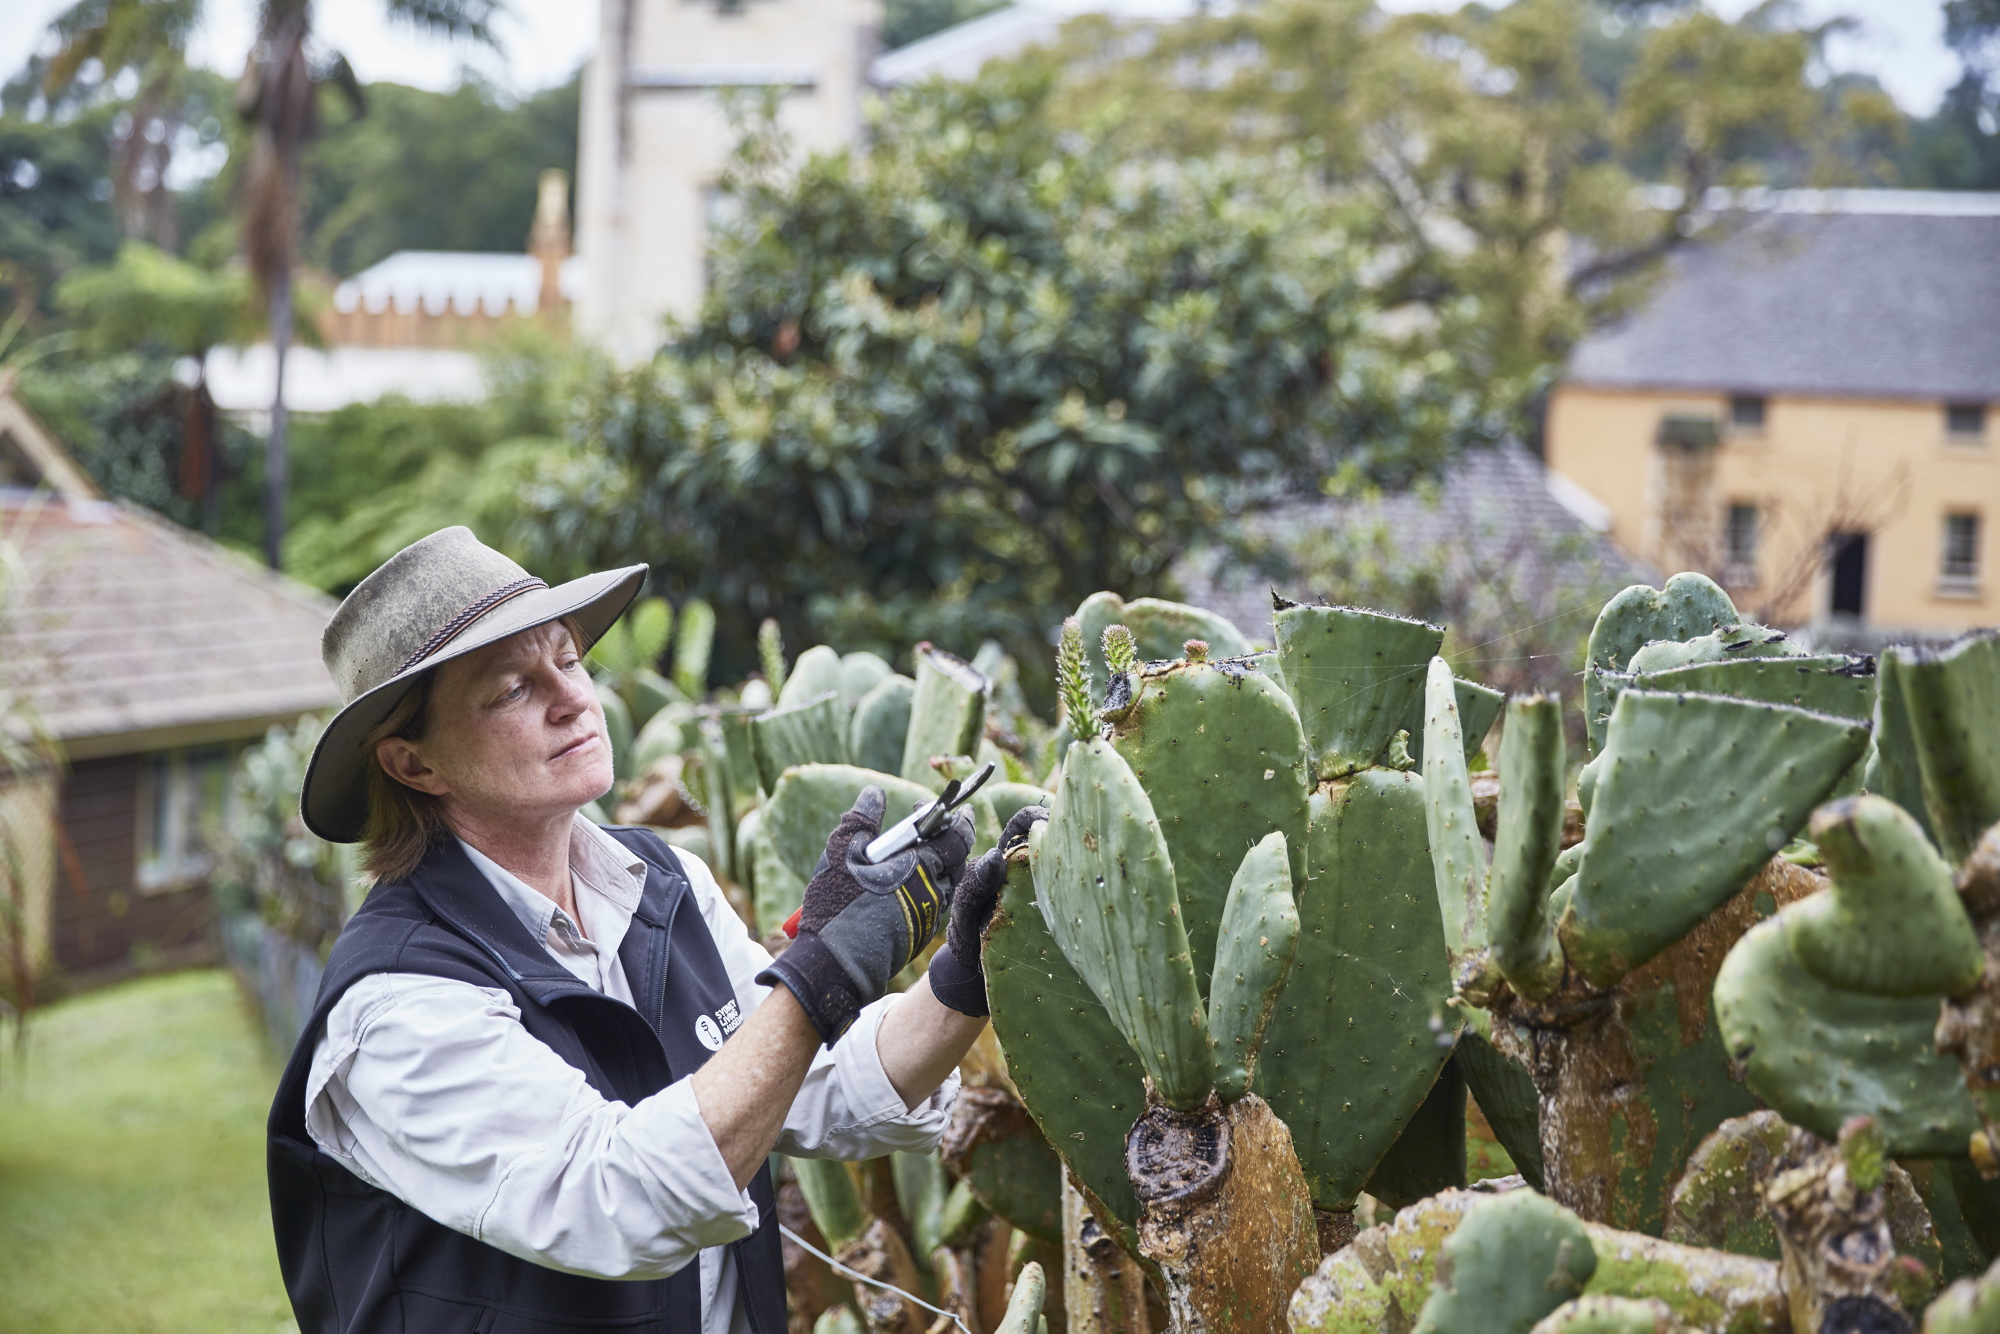 Horticulturist Anita pruning the prickly pear at Vaucluse House